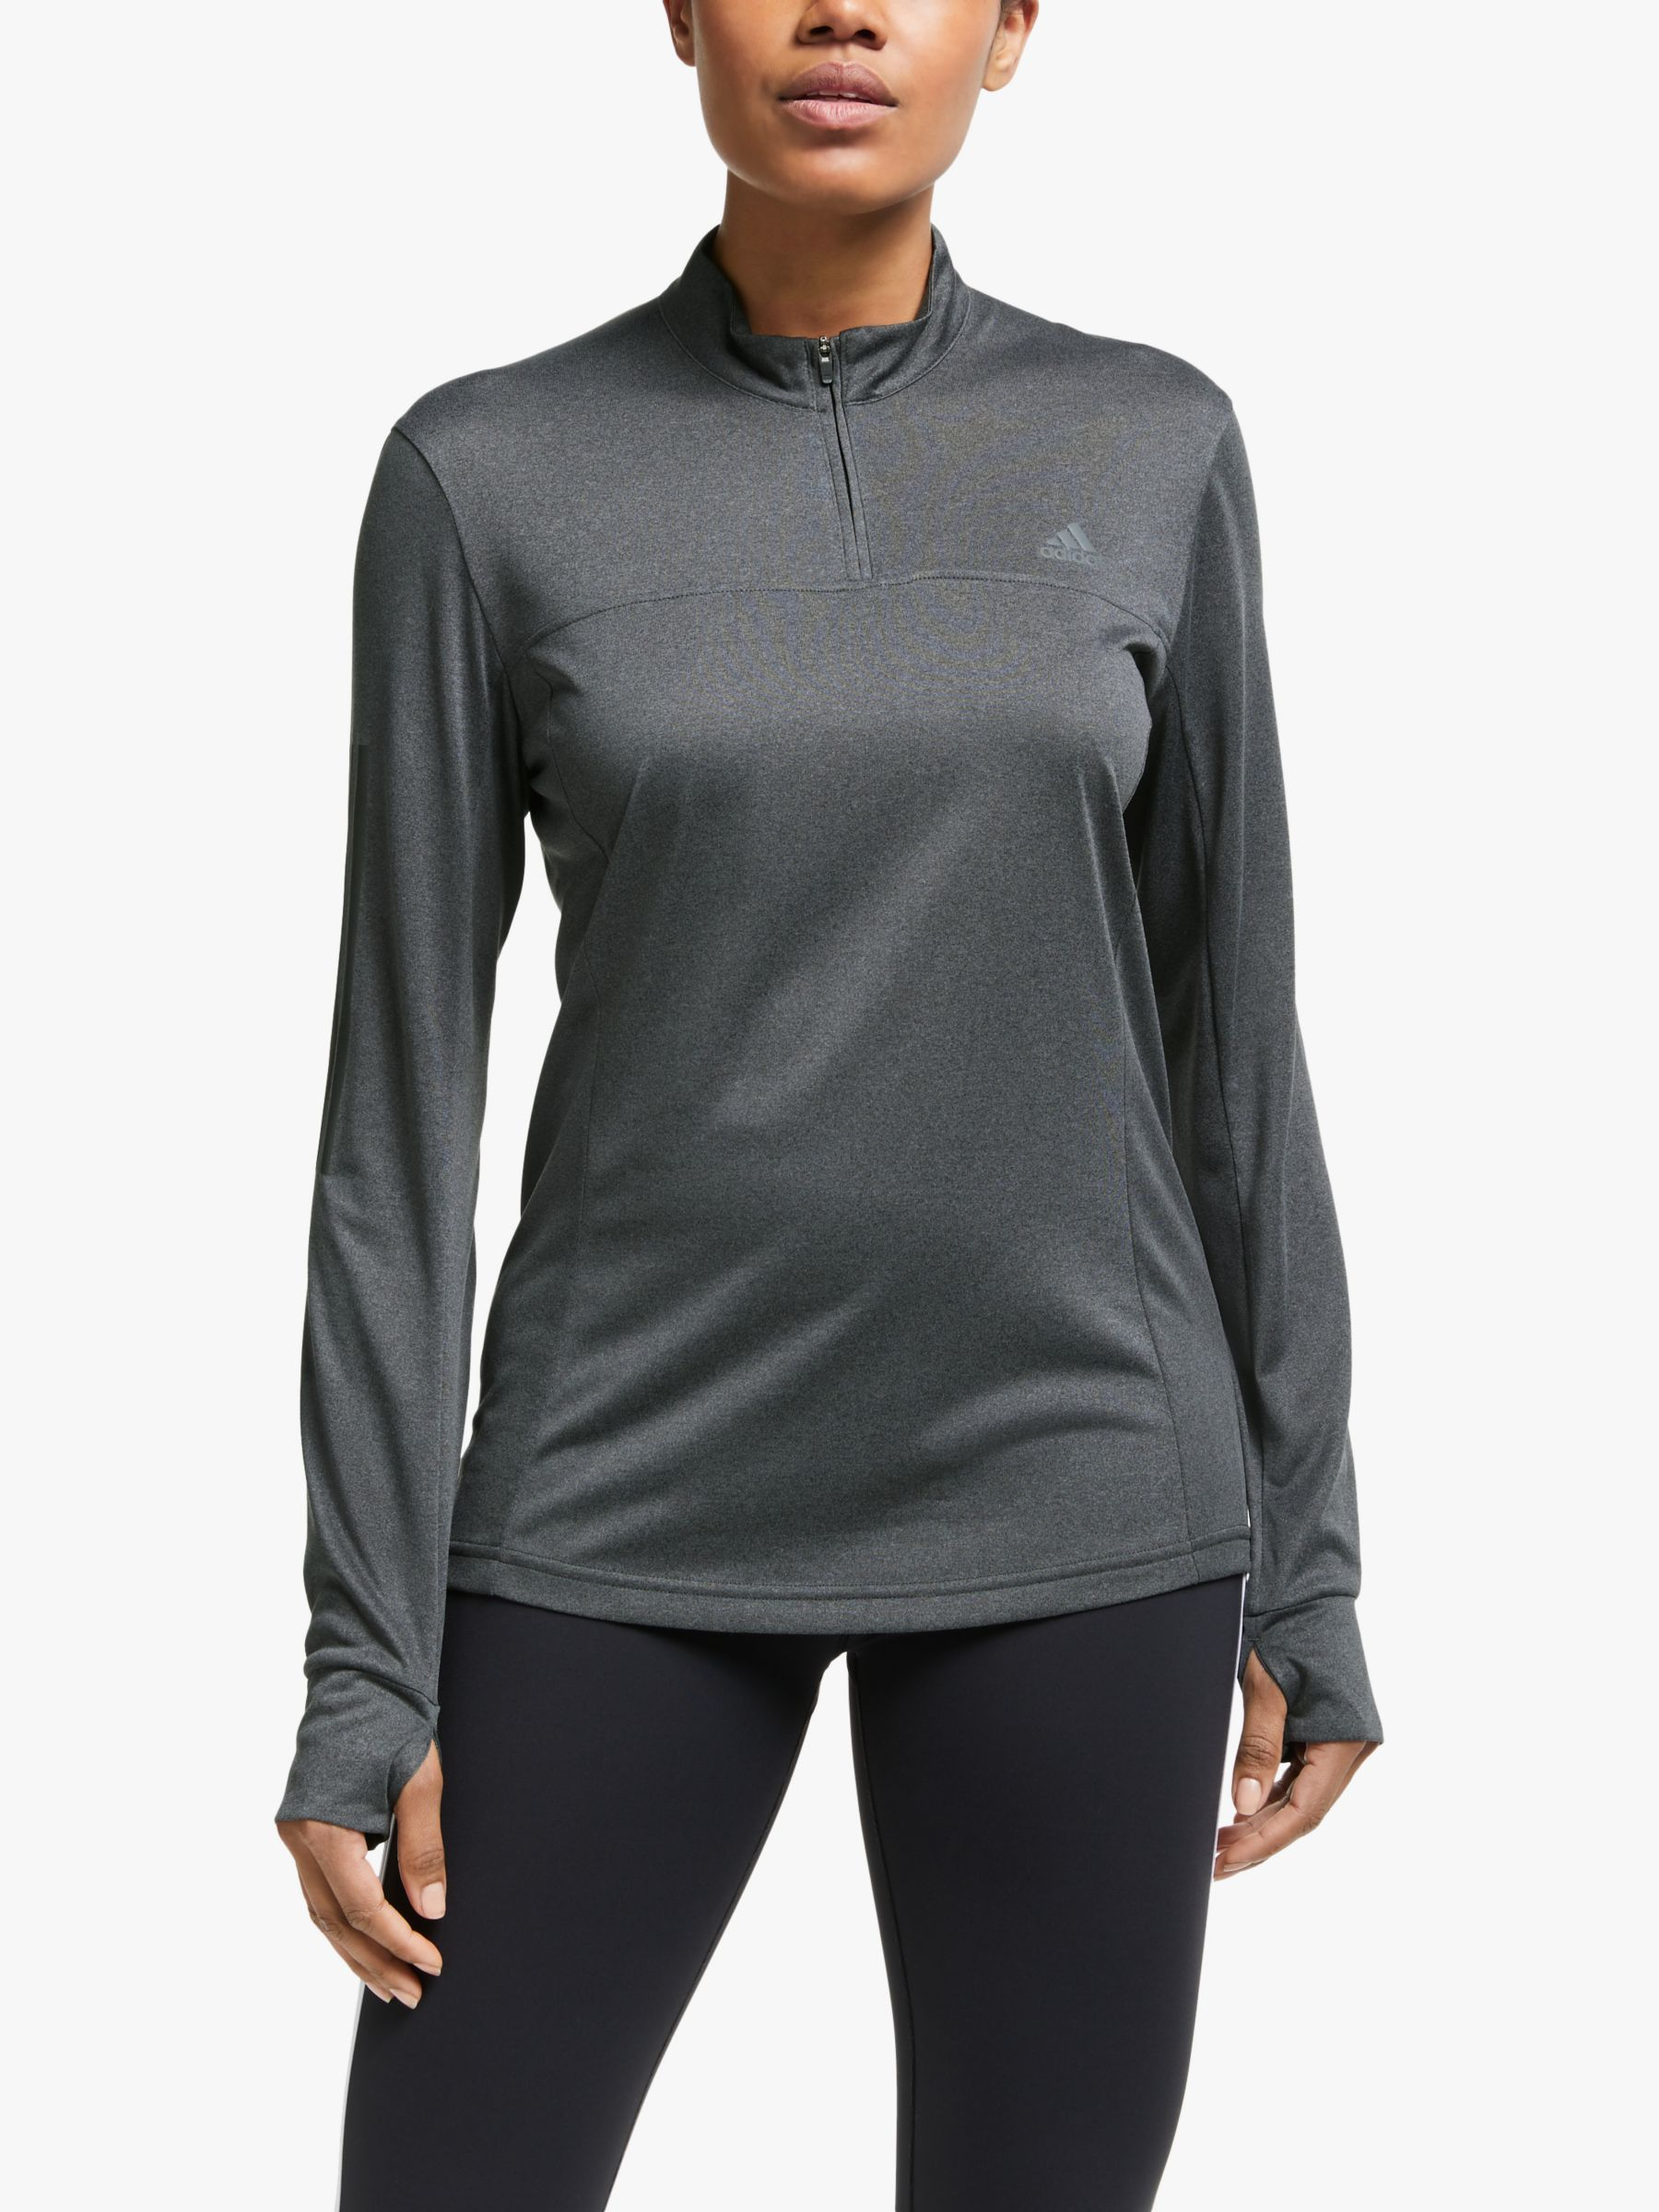 Adidas adidas Own The Run 1/2 Zip Long Sleeve Running Top, Grey Six